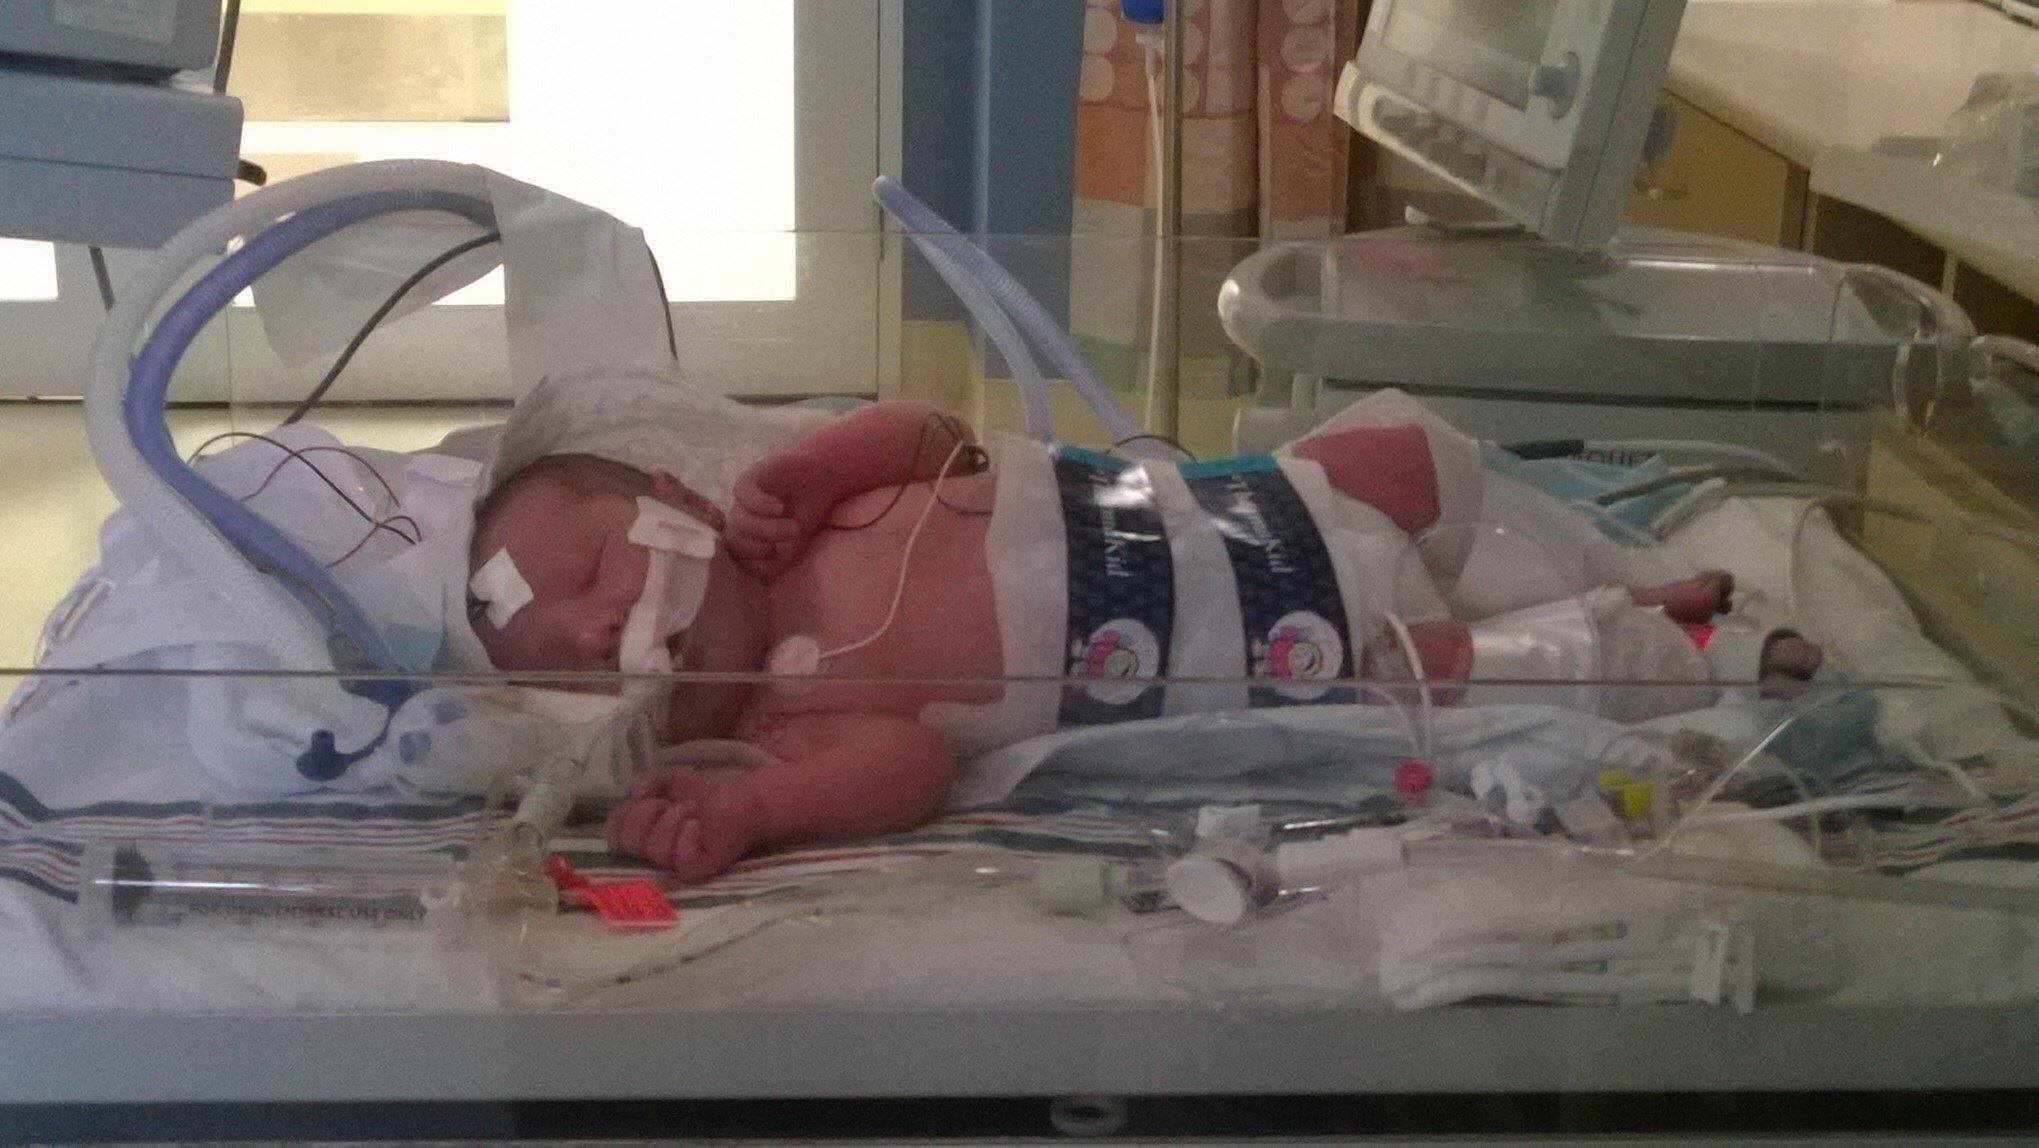 Baby Parker - Minutes after Parker was born, he suffered a severe seizure which led him to being life-flighted to OKC.